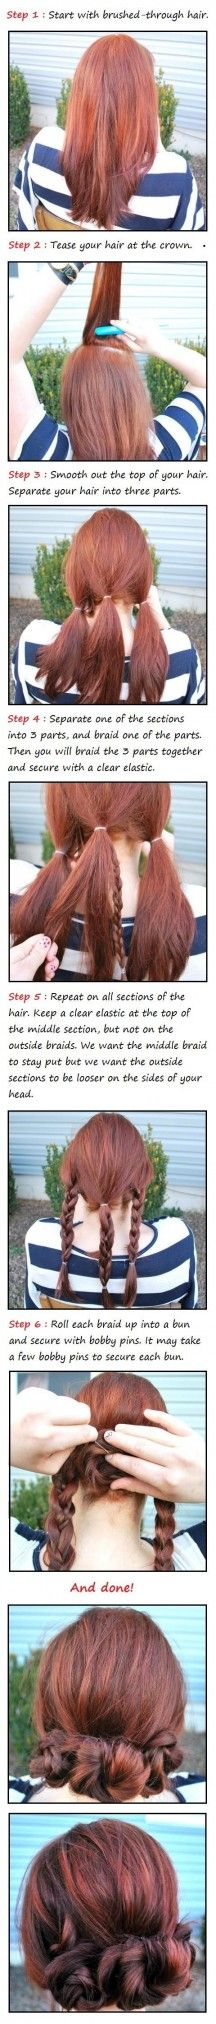 The three Braided Buns Hair Tutorial